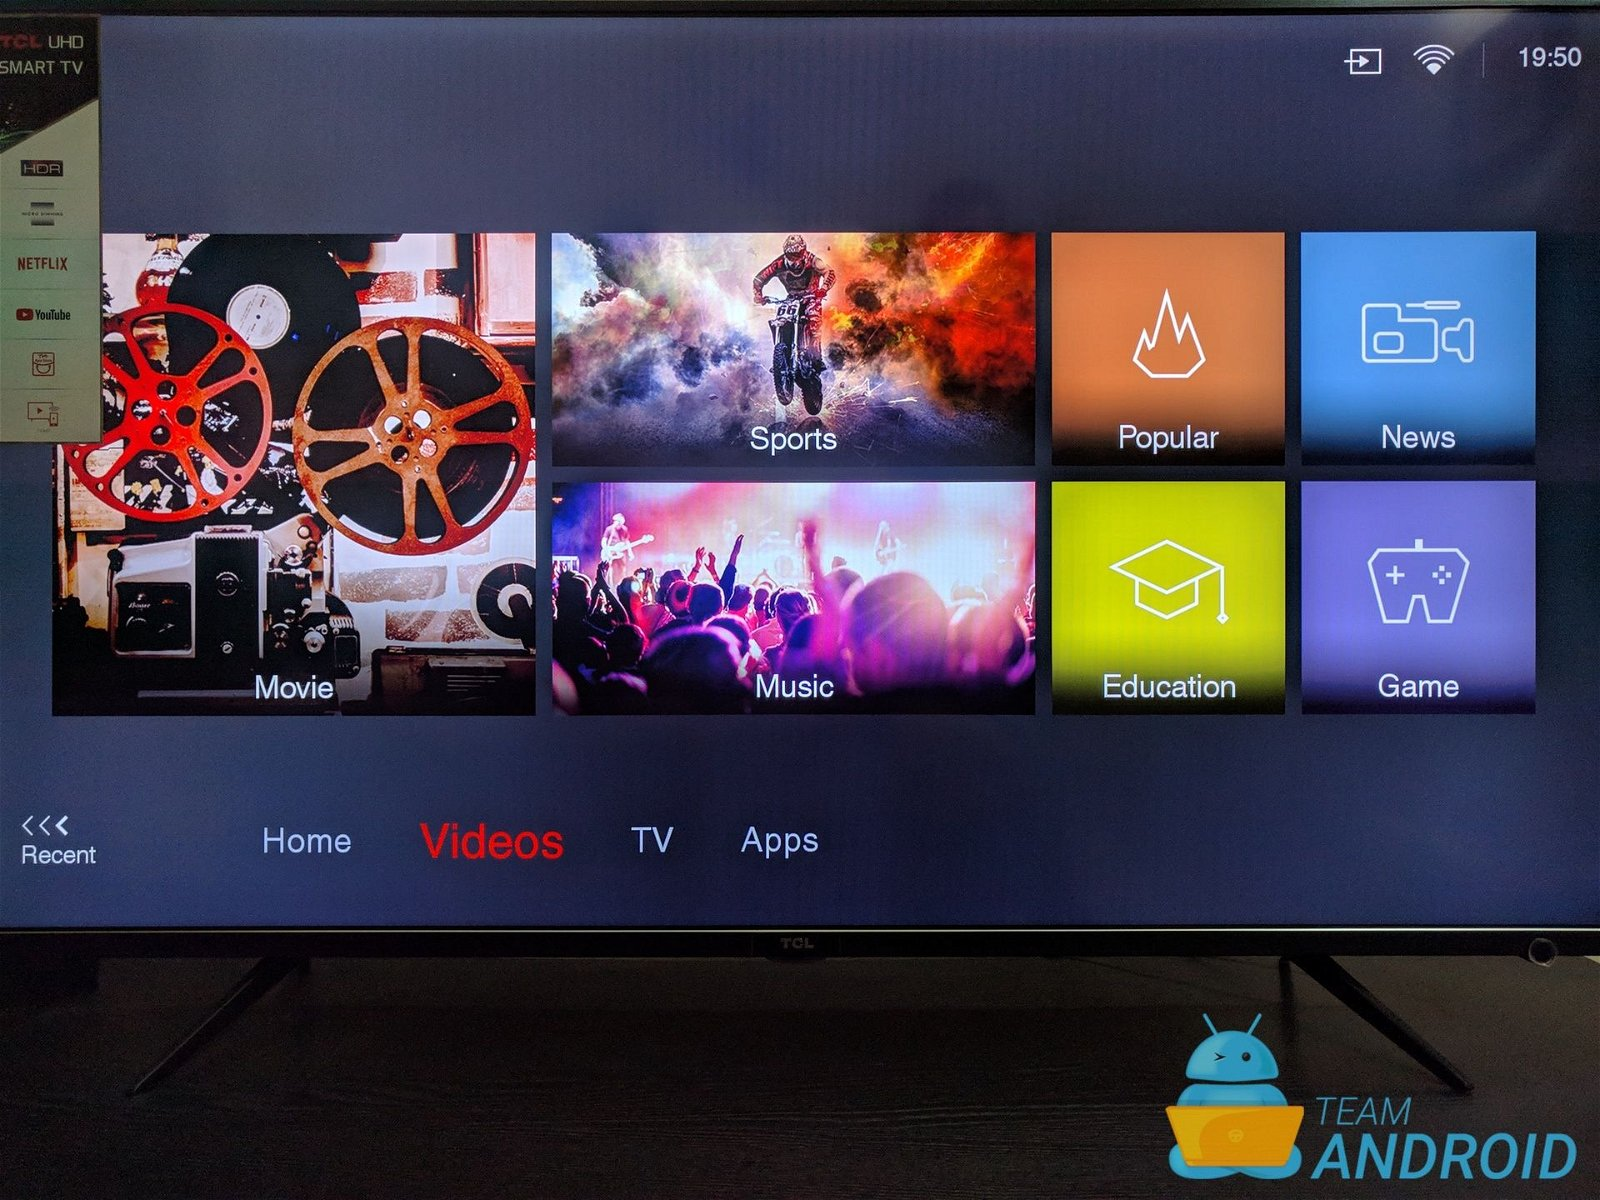 Apk 6tv: HOW TO: Install APK Files / Sideload Apps To Android TV